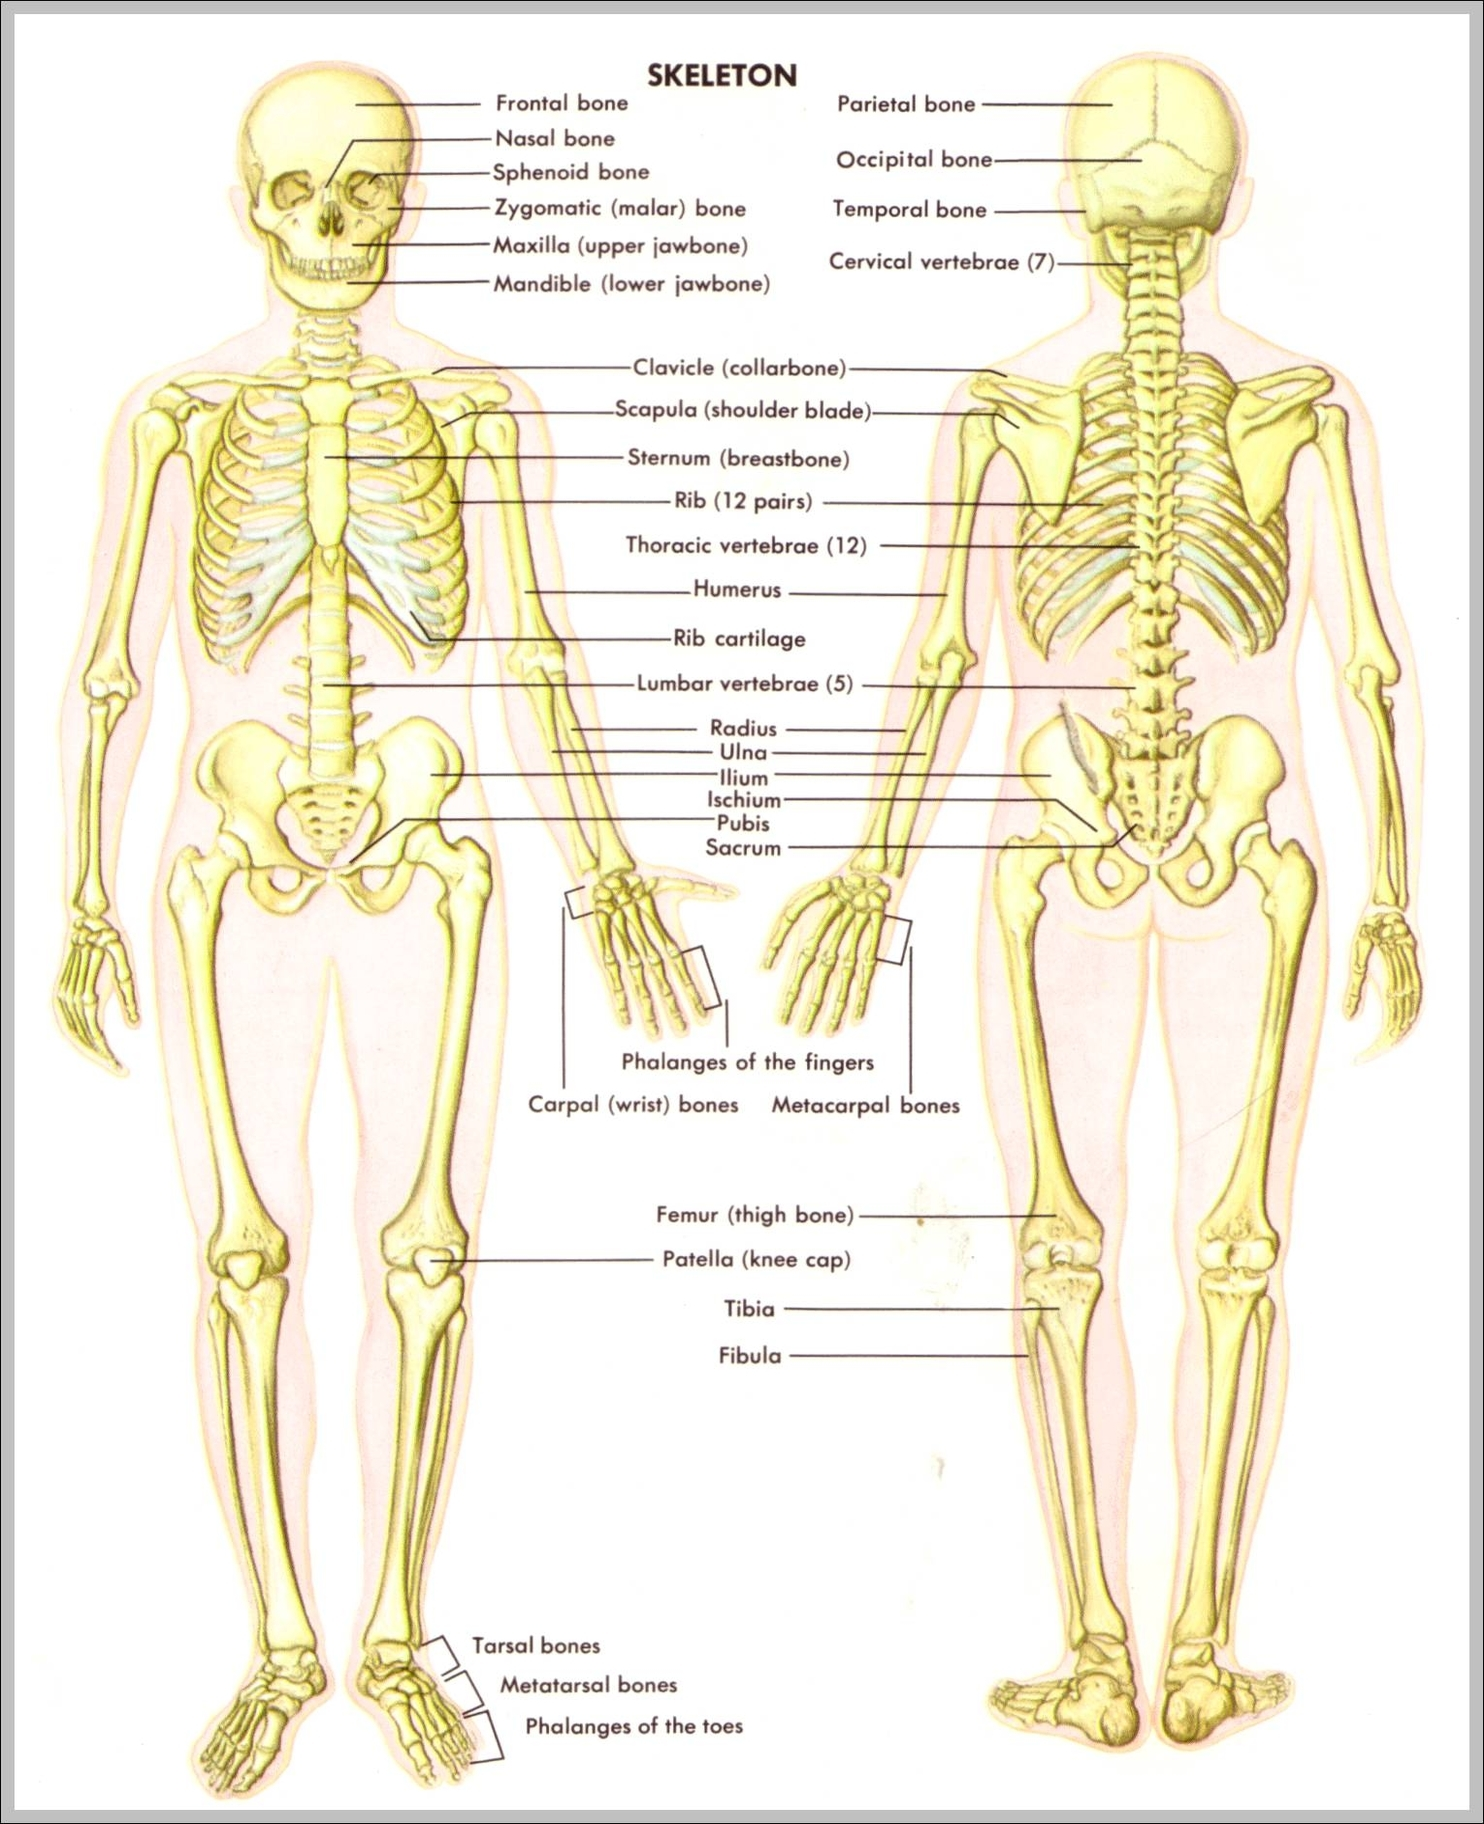 Skeletal Anatomical Diagram Of The Back - Trusted Wiring Diagram •